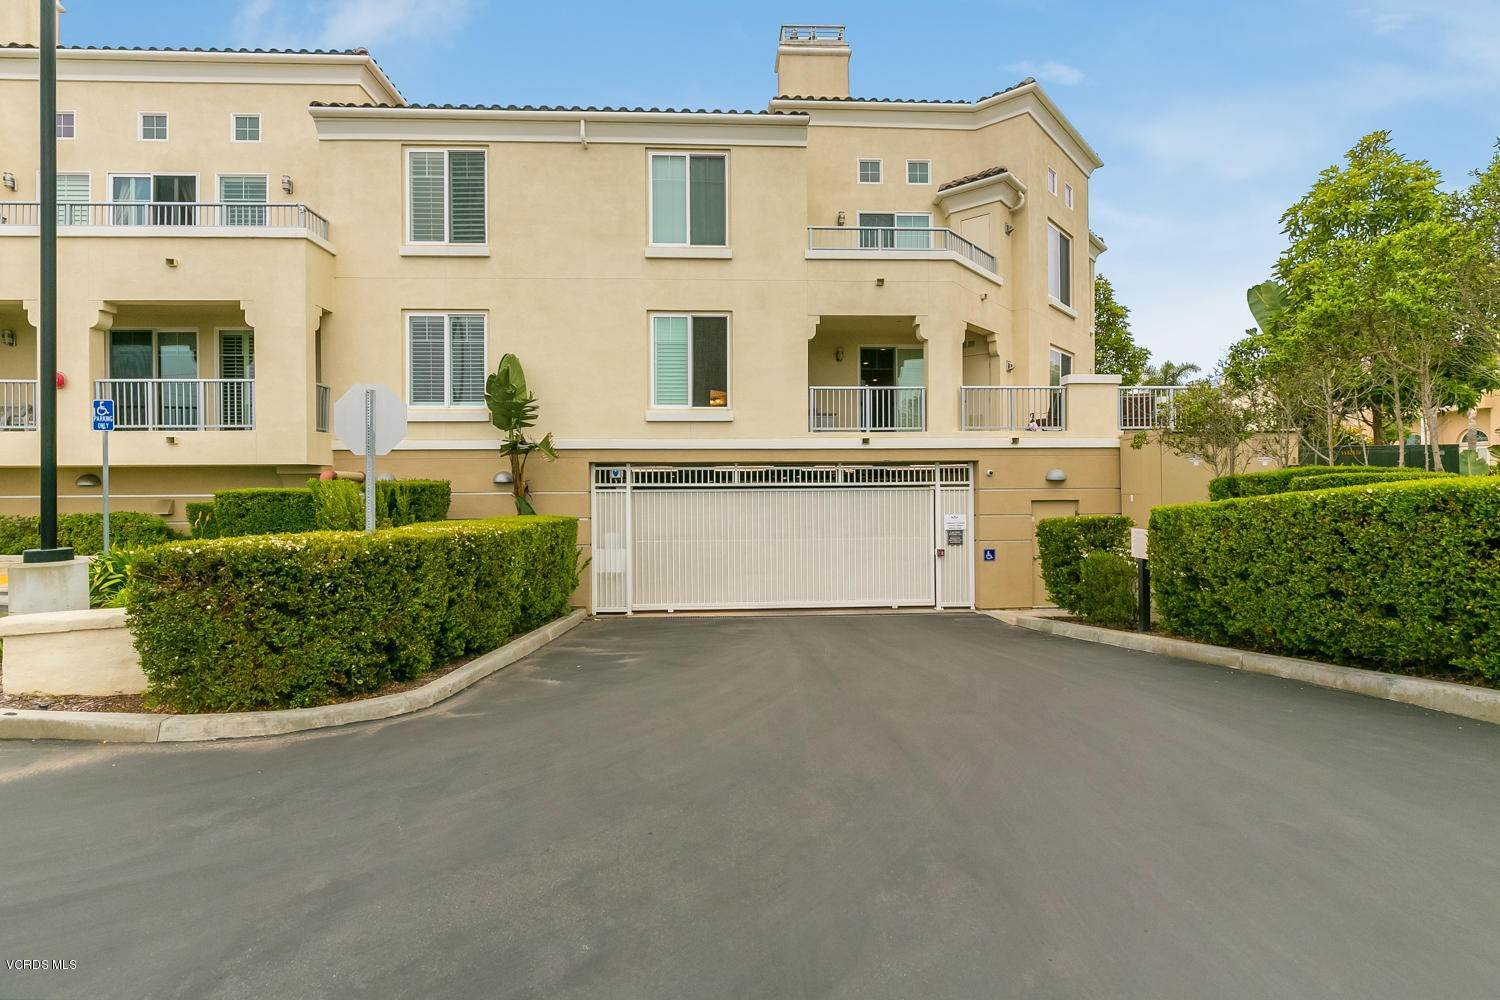 28. Condominiums for Sale at 4366 Tradewinds Drive Oxnard, California 93035 United States